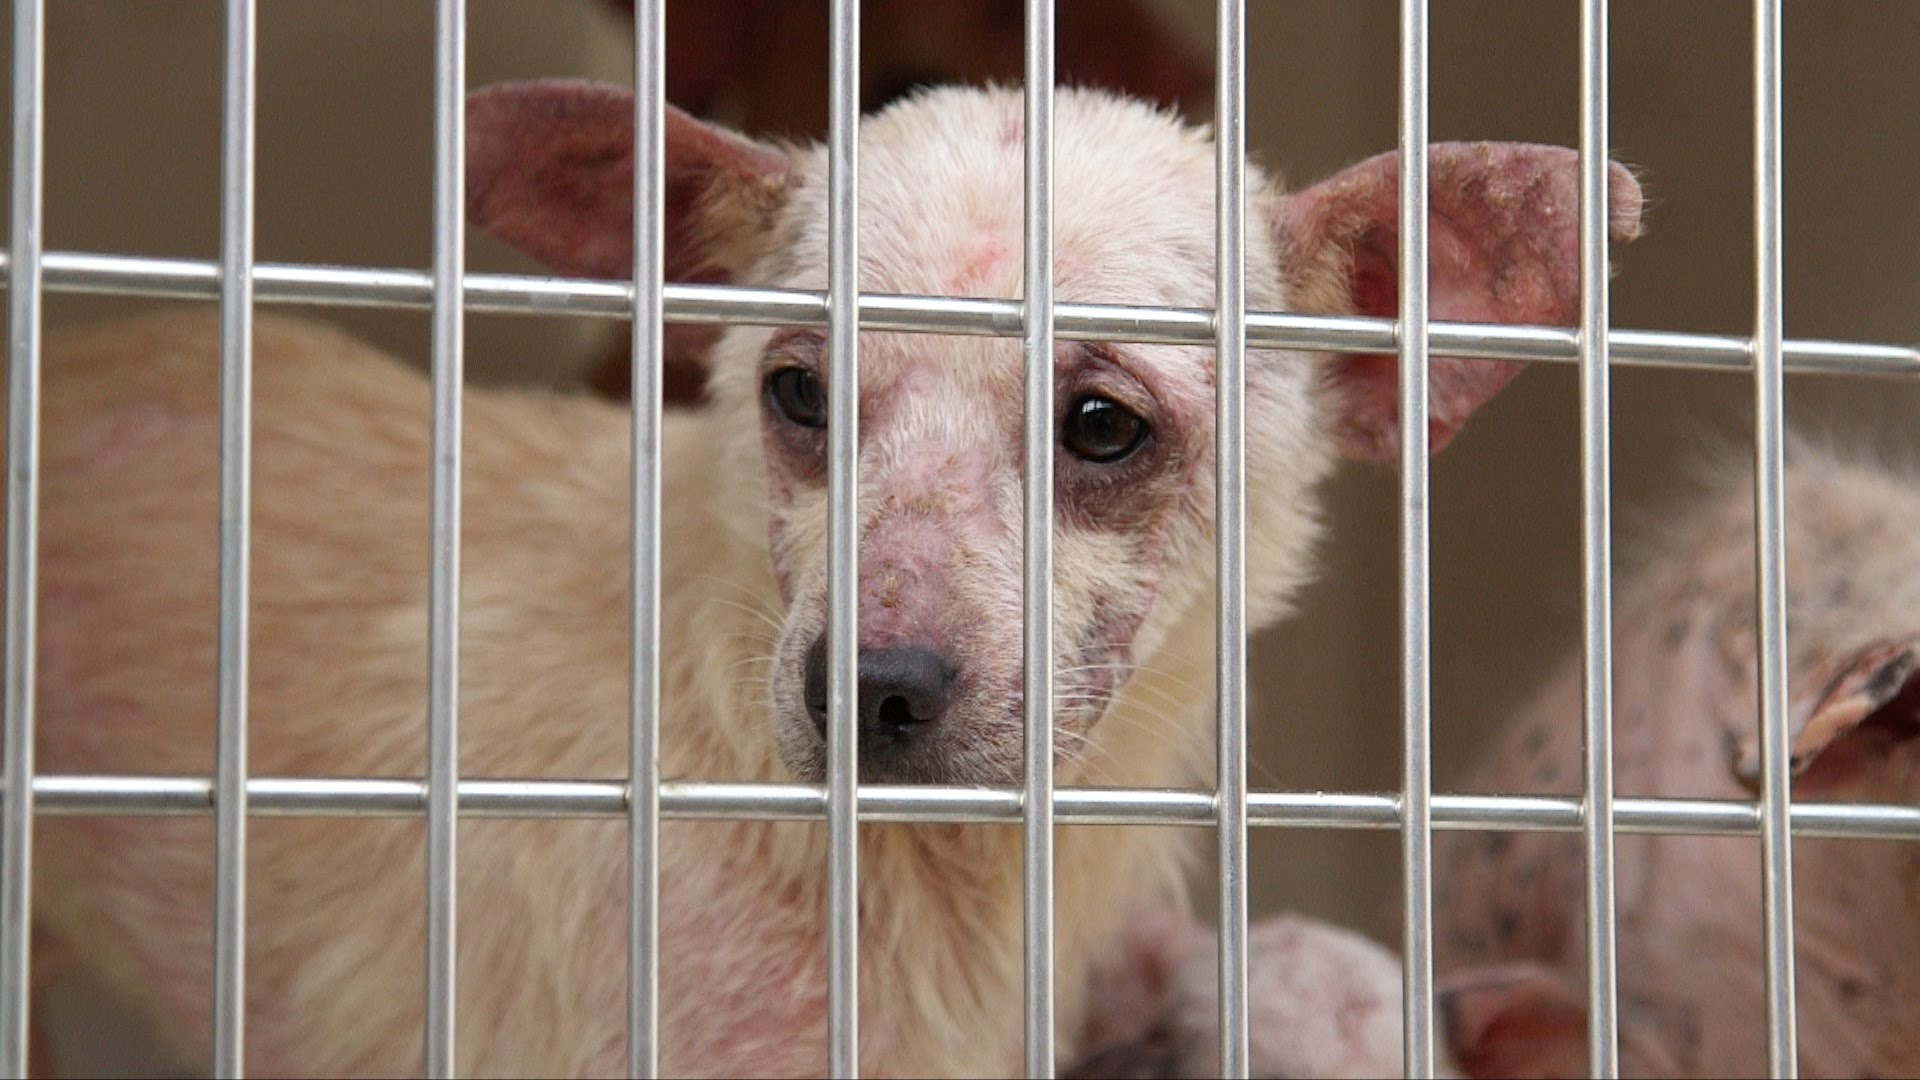 30 Dogs Seized at Home